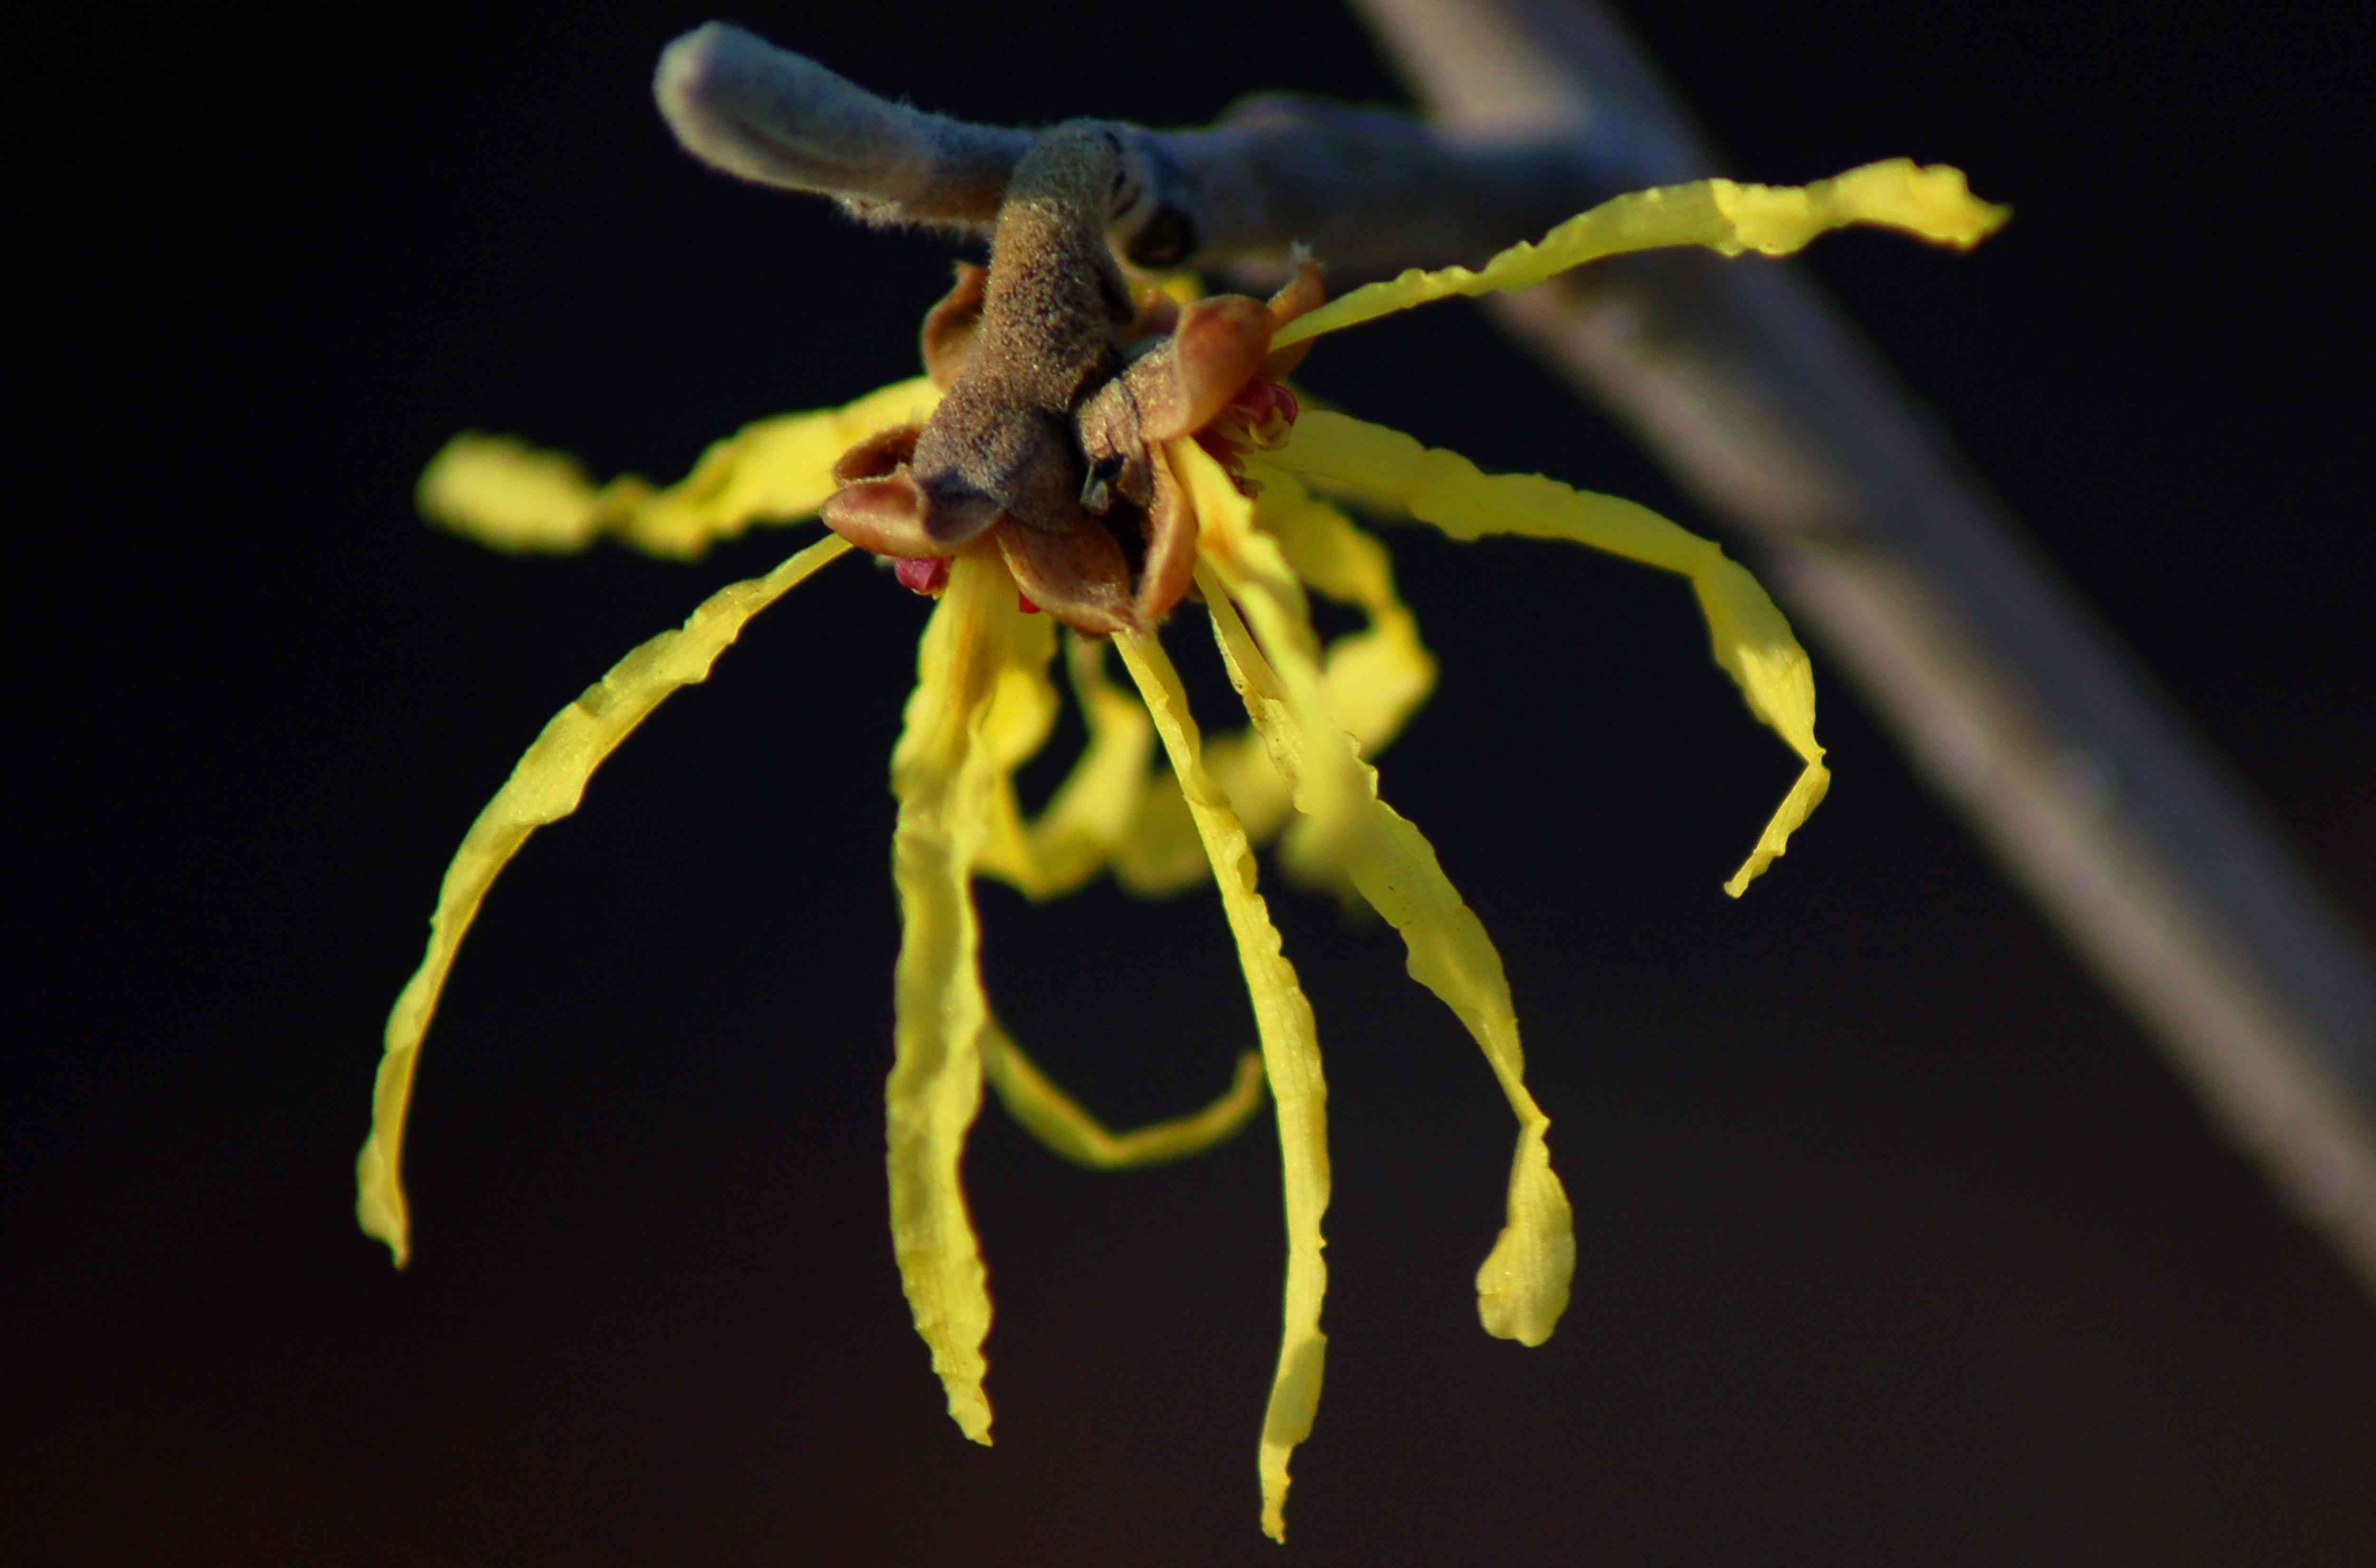 Witch hazel plant with thin yellow petals closeup